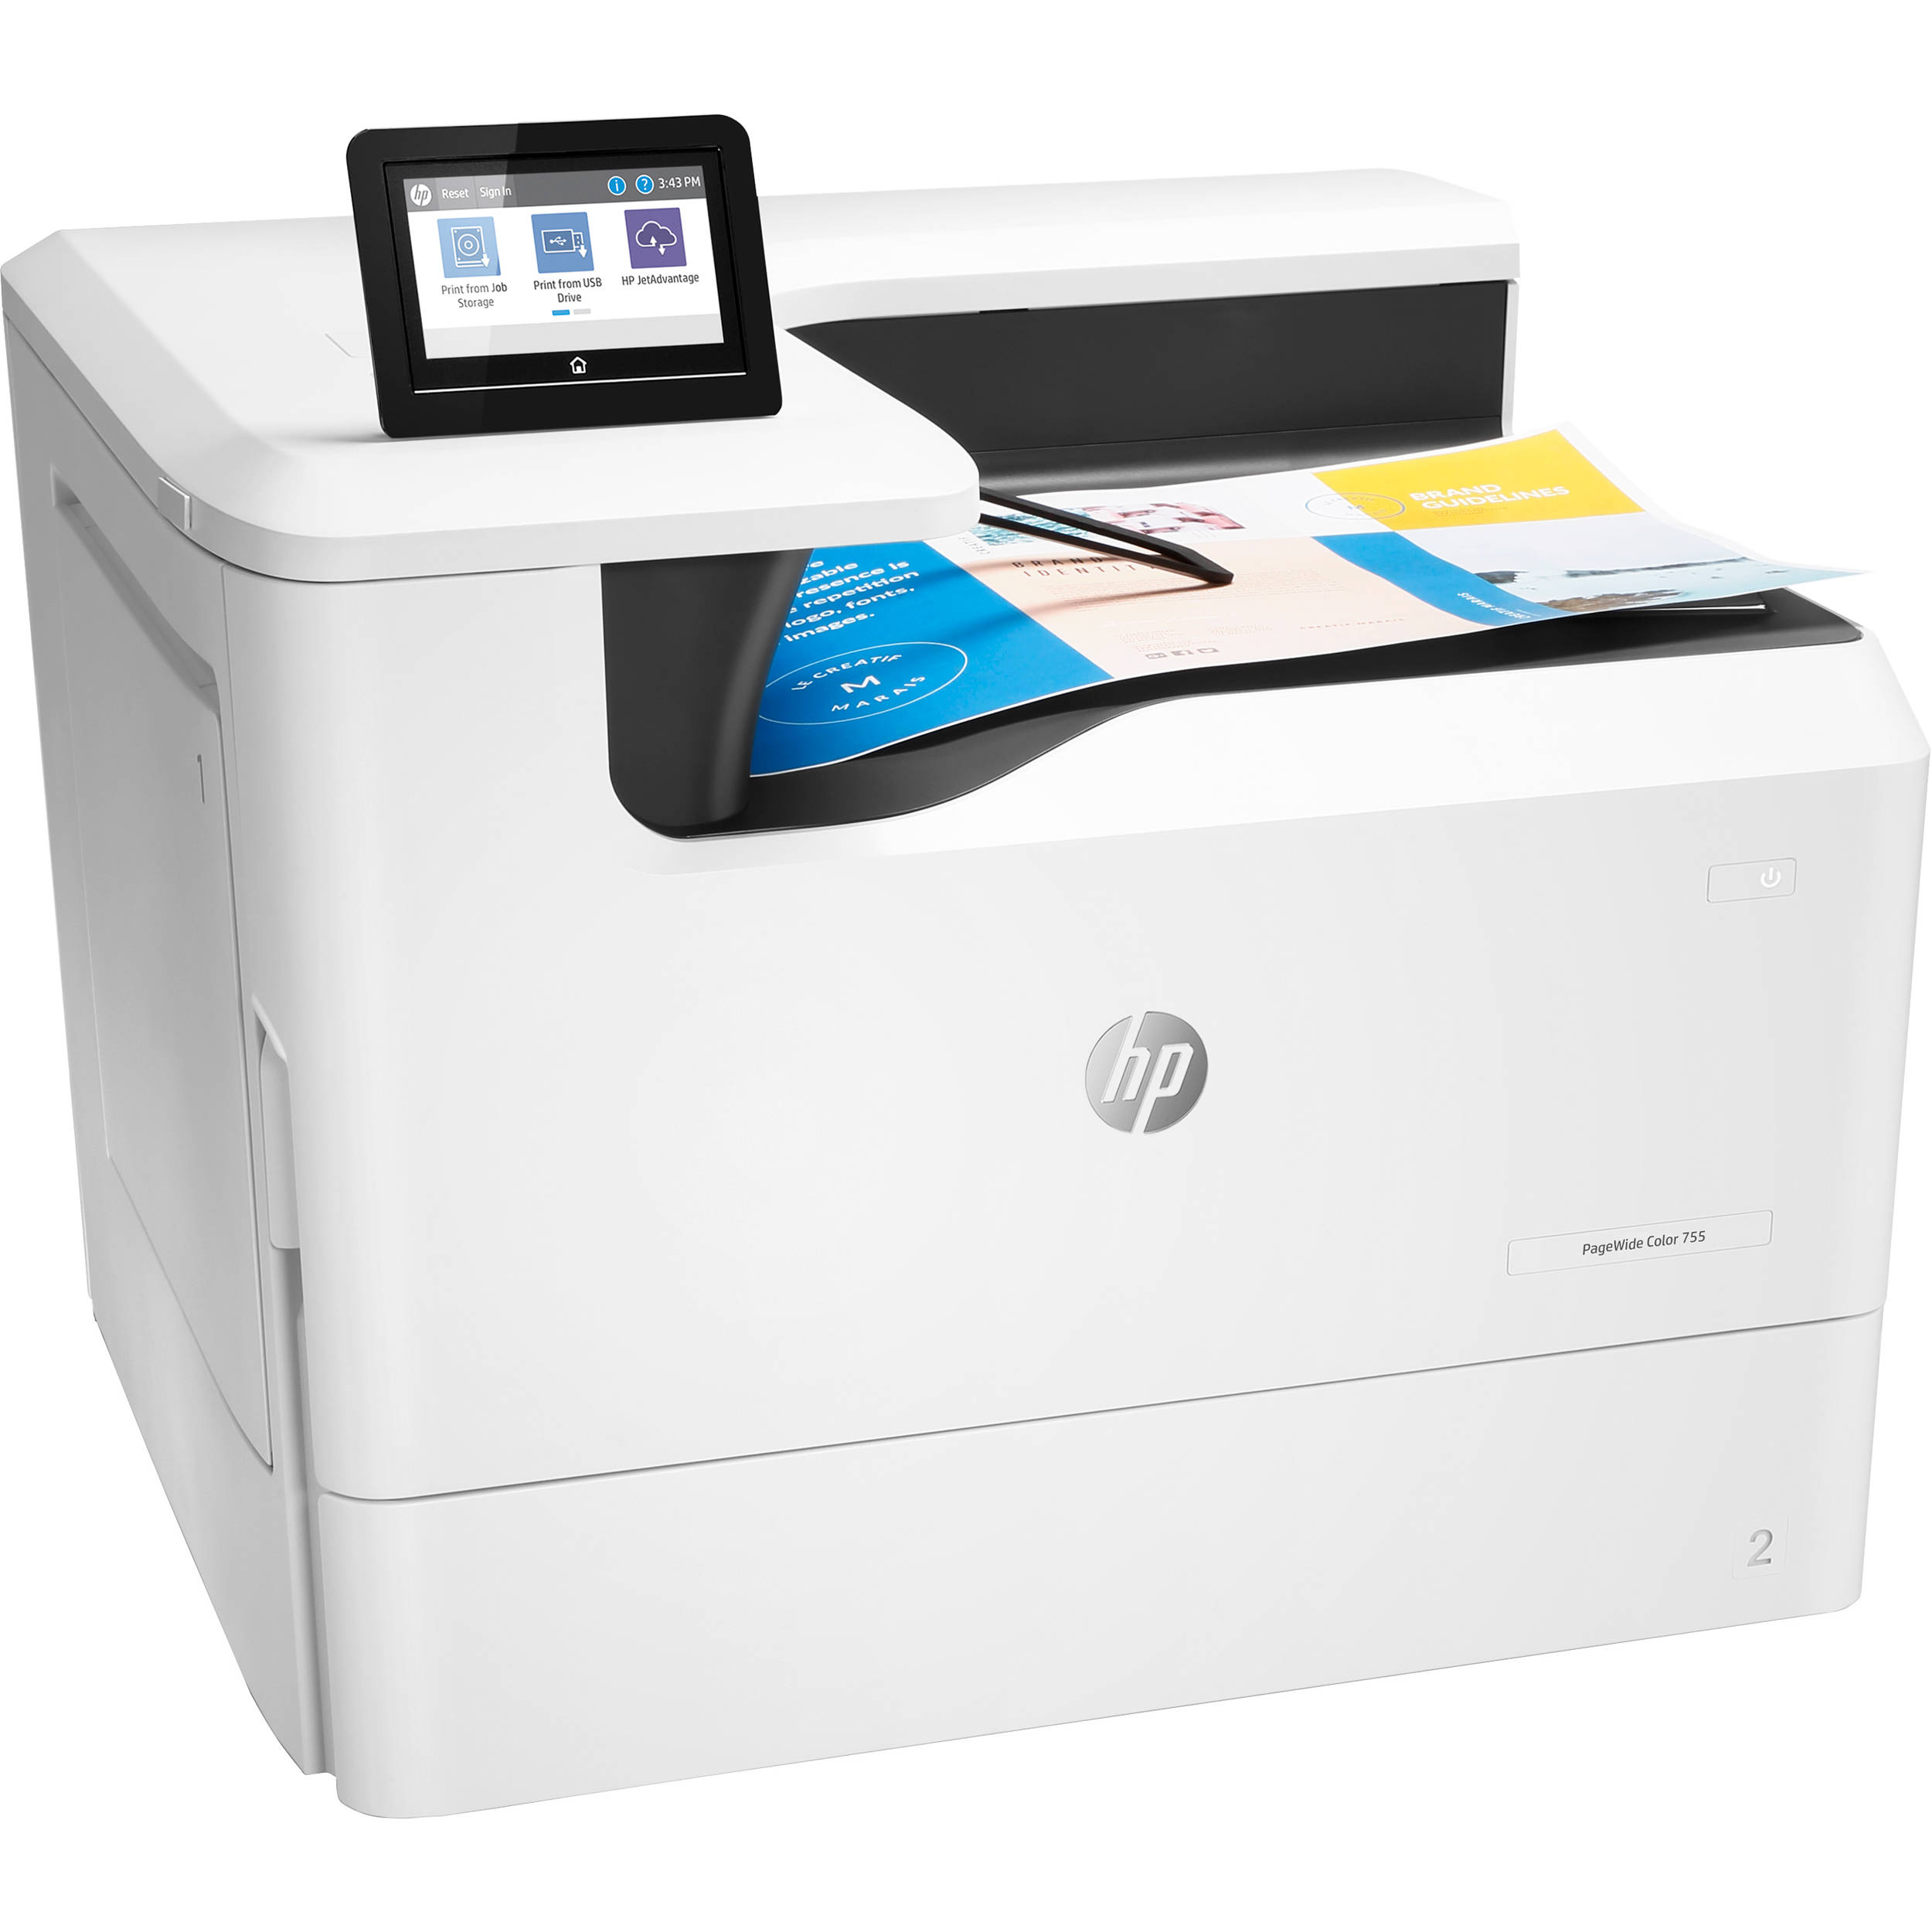 HP PageWide Color 755dn Color Laser Printer, Demo (4PZ47A)